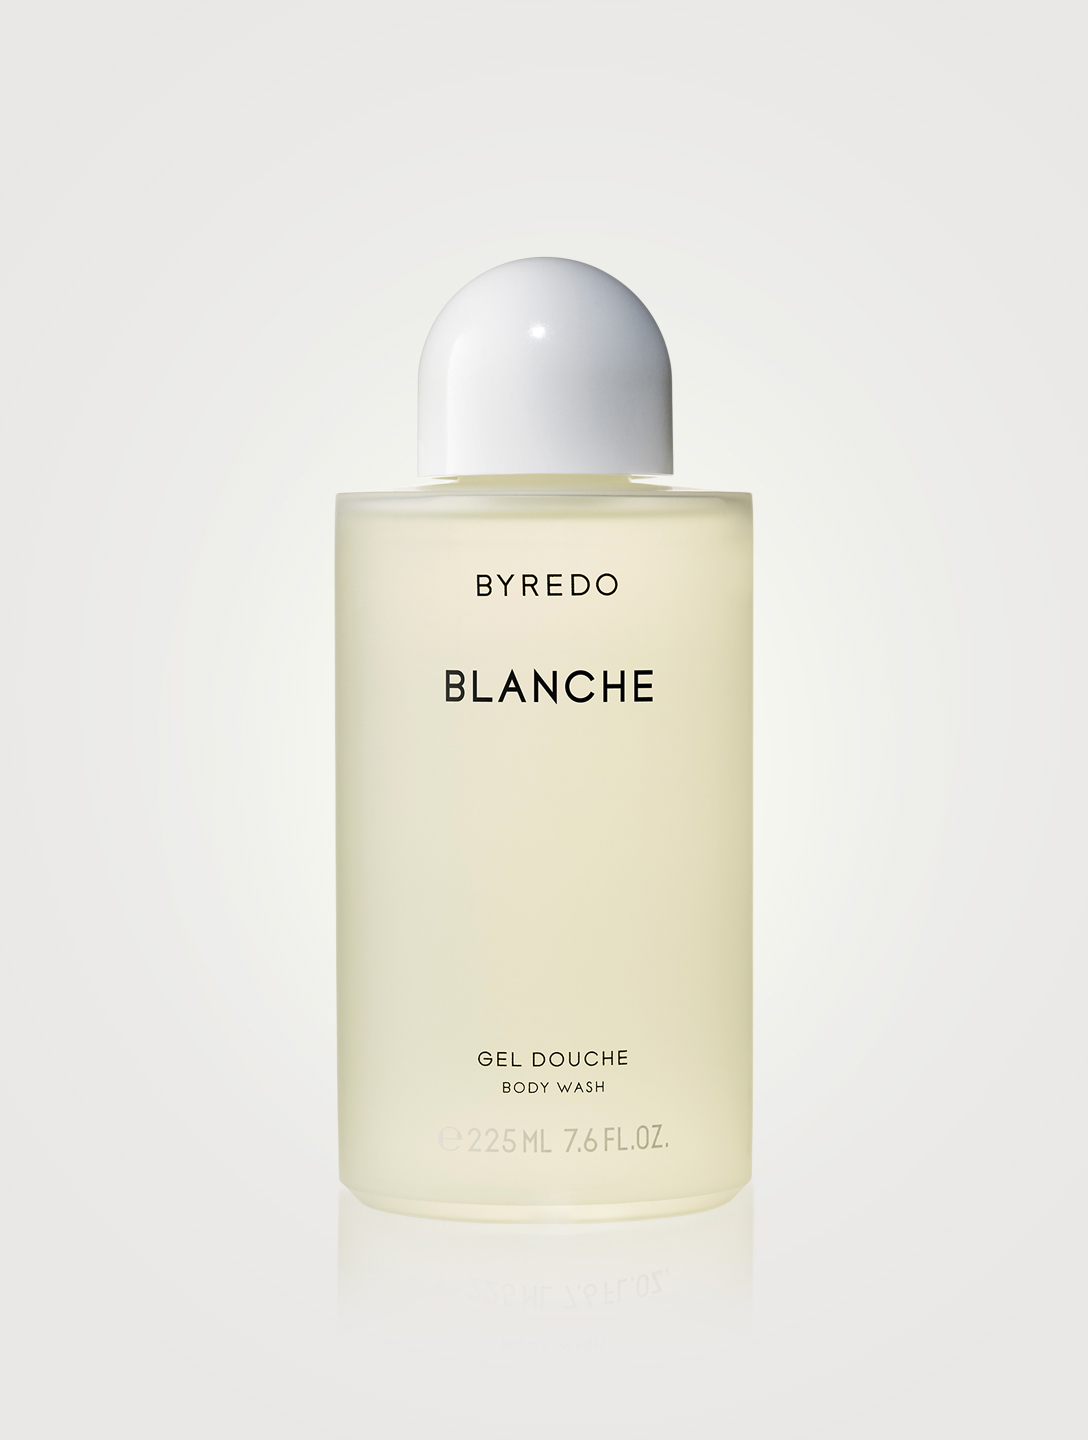 BYREDO Blanche Body Wash Beauty